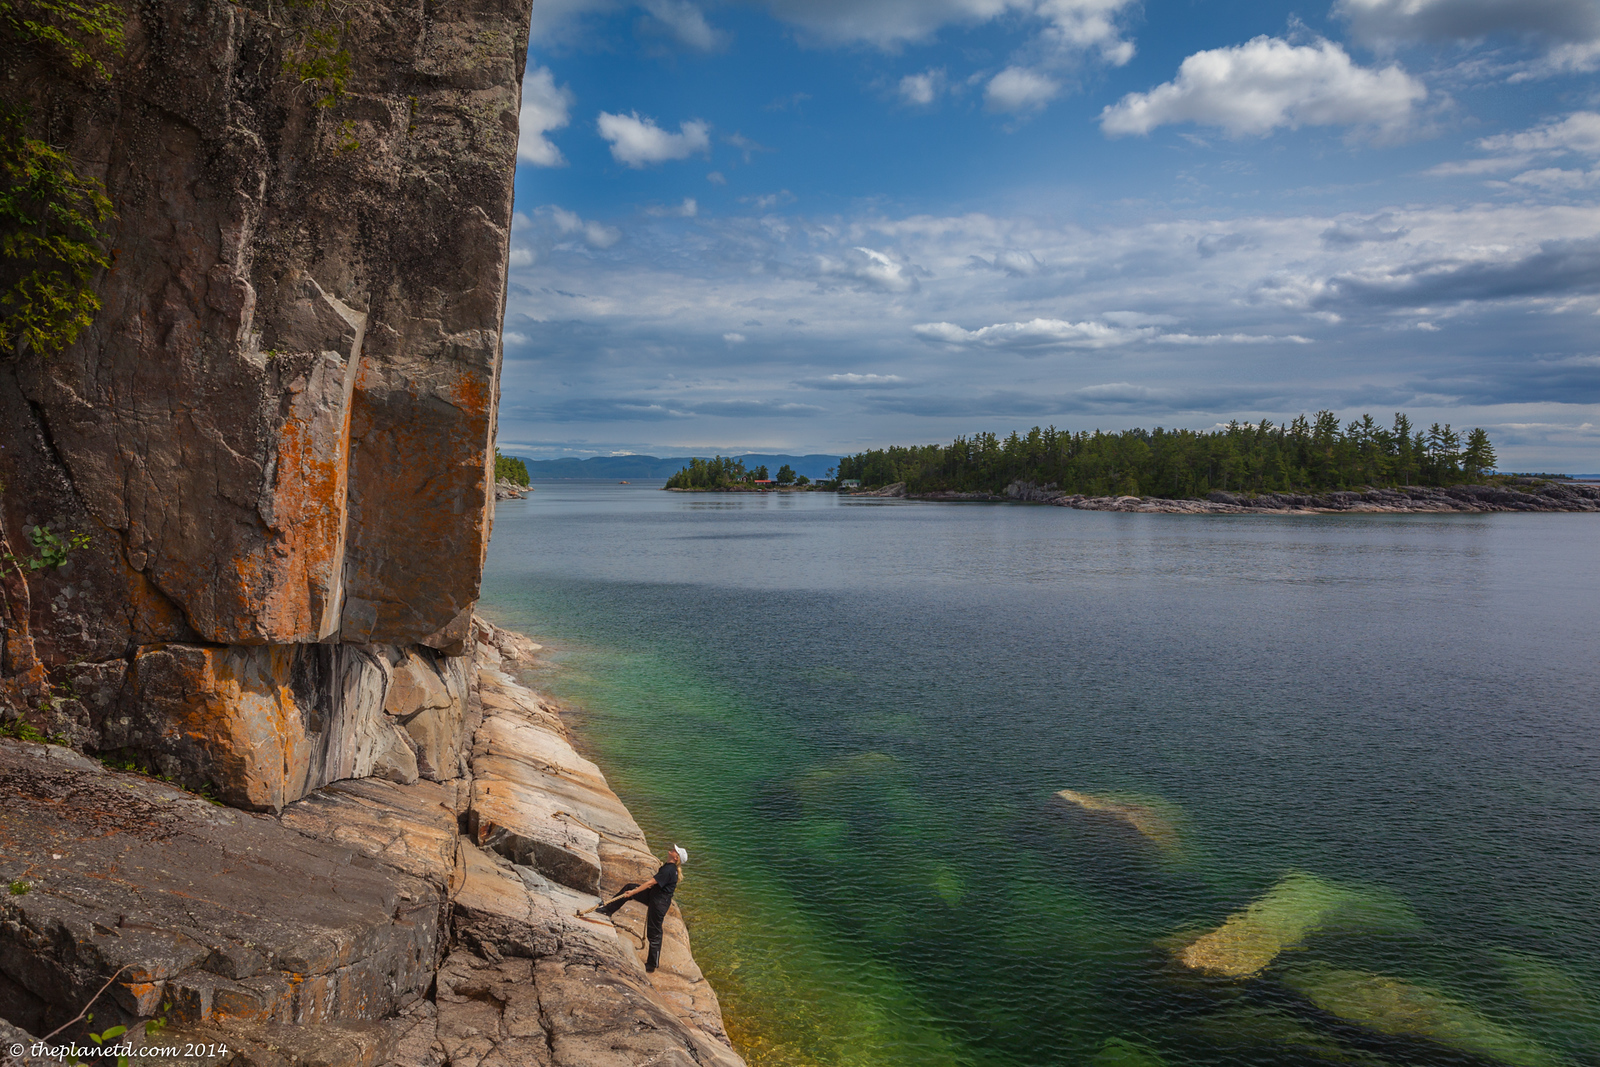 Taking in the Petroglyphs on the North Shore of Lake Superior on our Motorcycle trip.